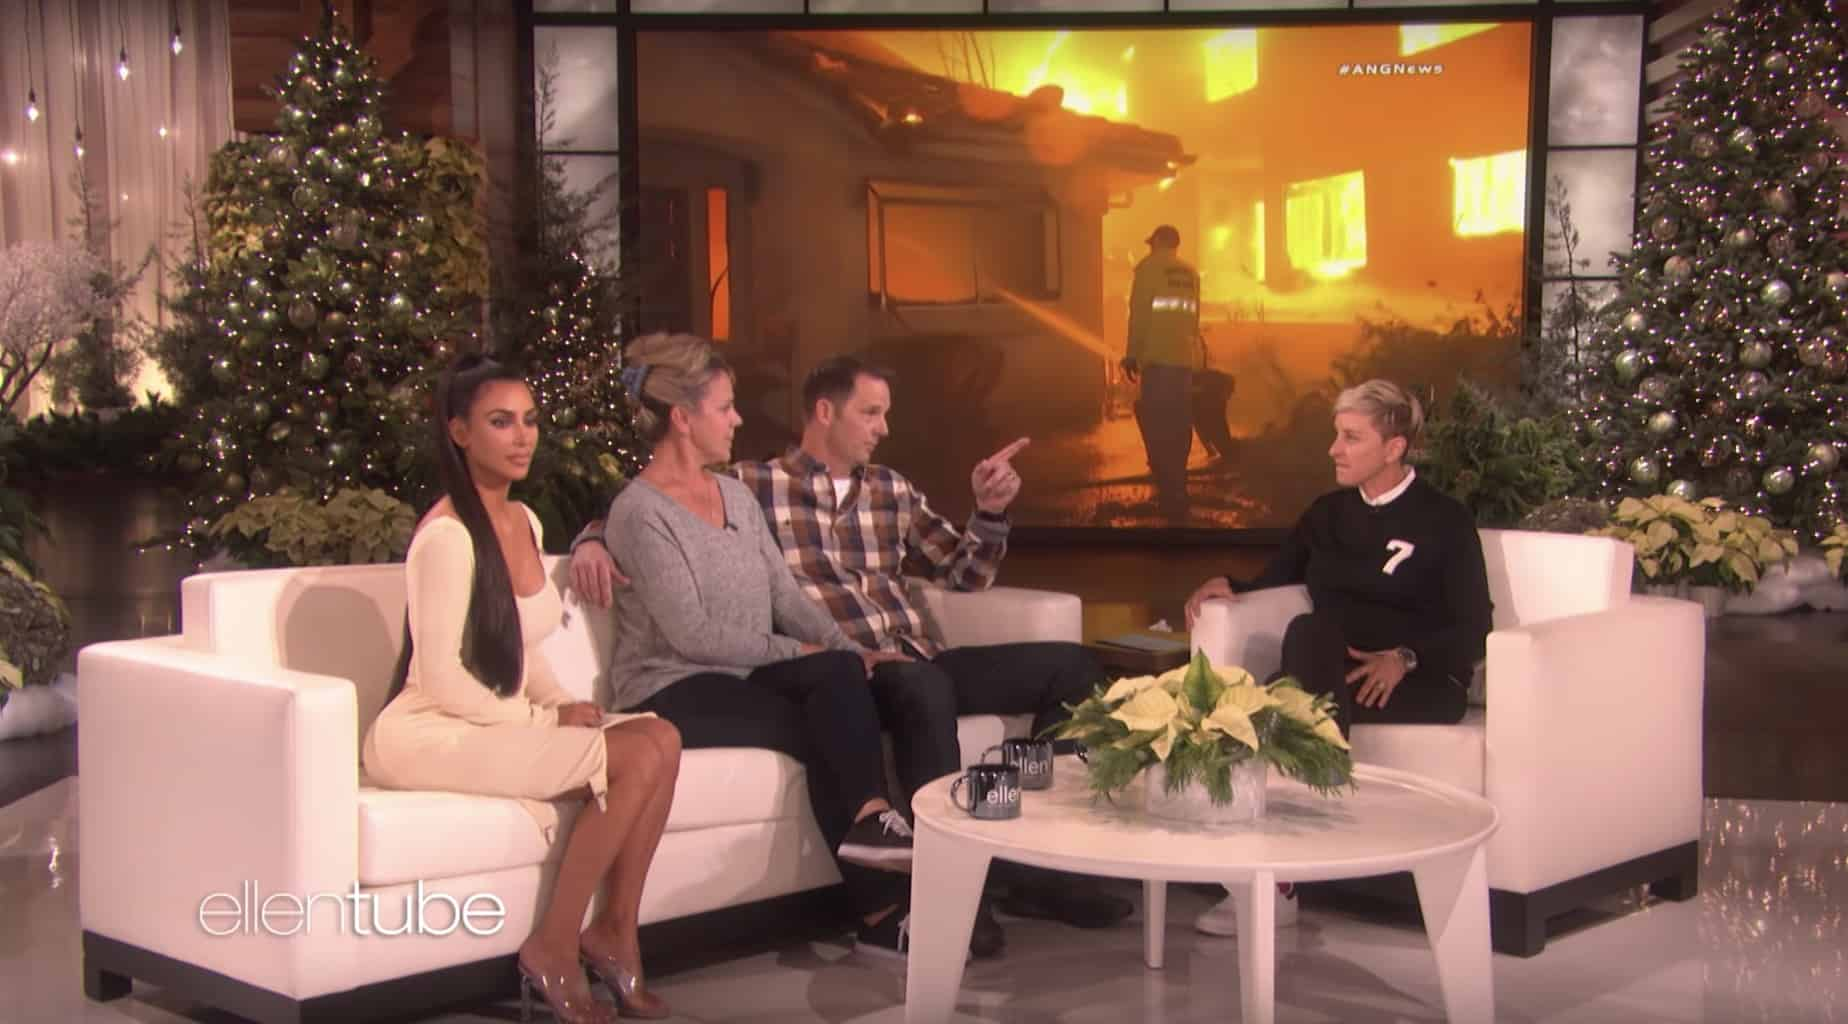 Michael Williams talks to Ellen Degeneres about the California wildfires.